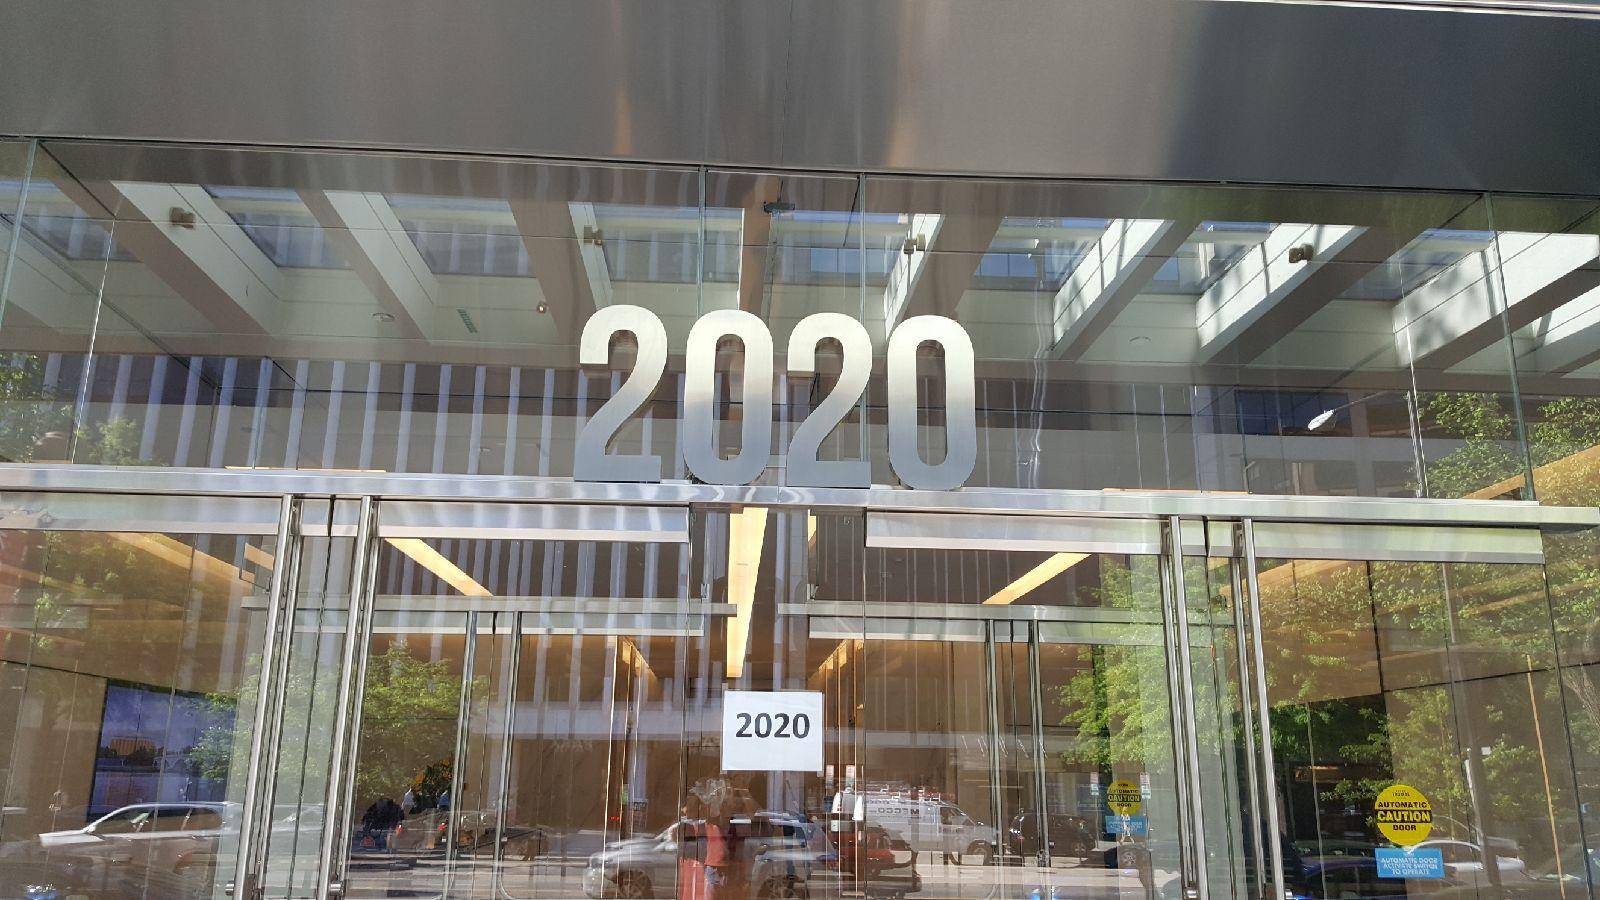 2020 front on.jpg